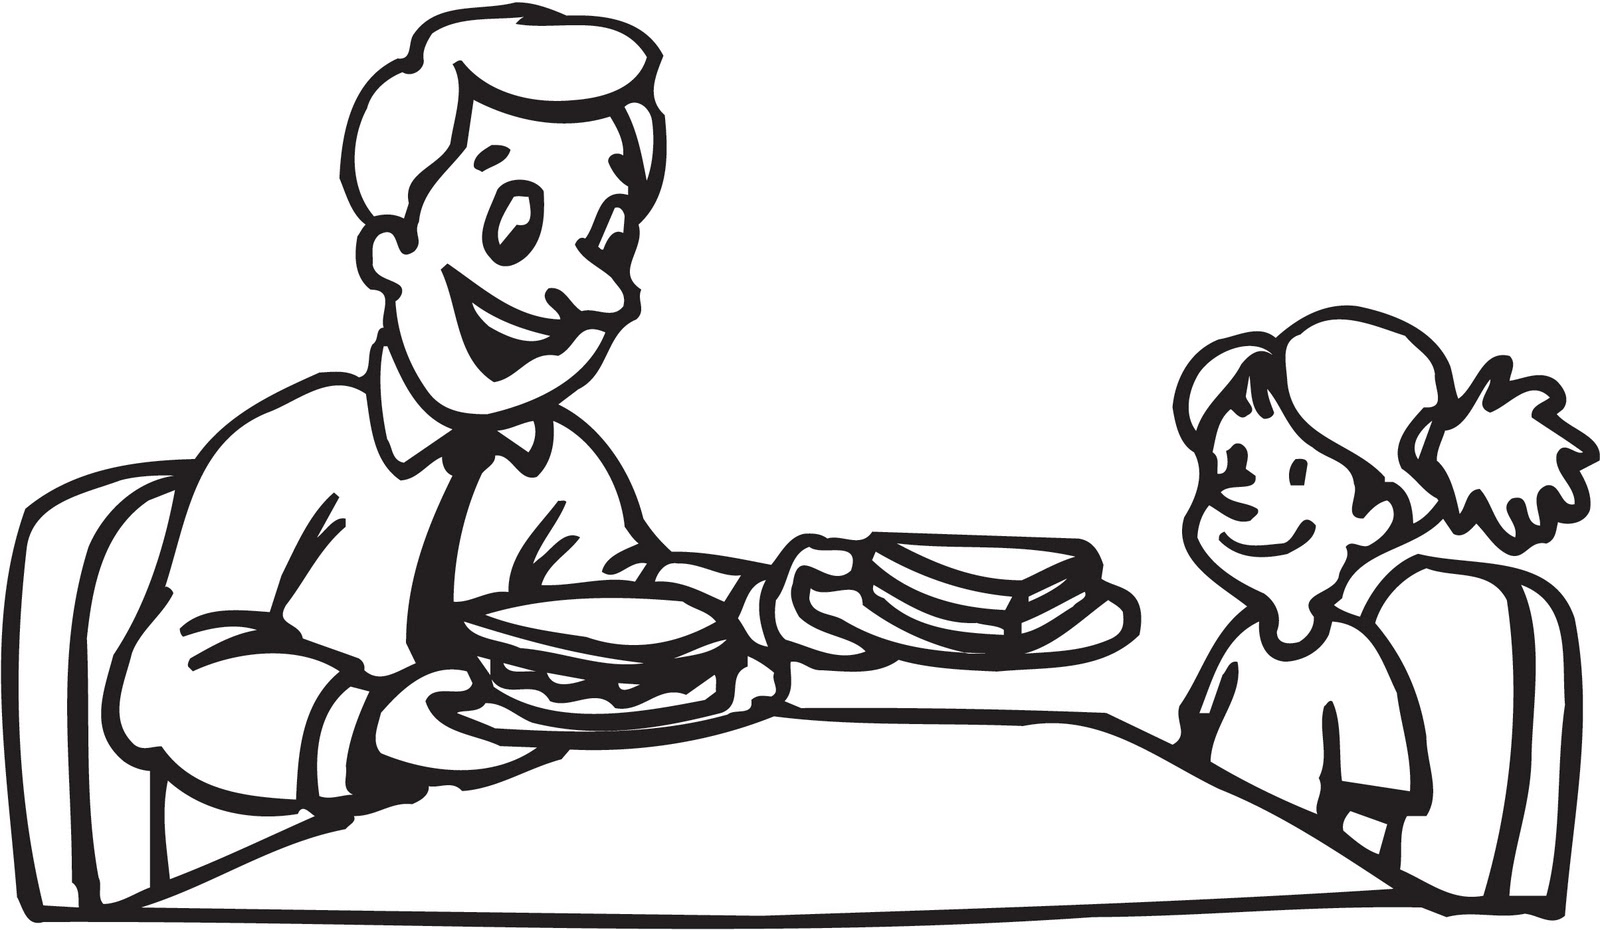 Father and daughter clipart black and white picture transparent library Free Dad Girl Cliparts, Download Free Clip Art, Free Clip Art on ... picture transparent library